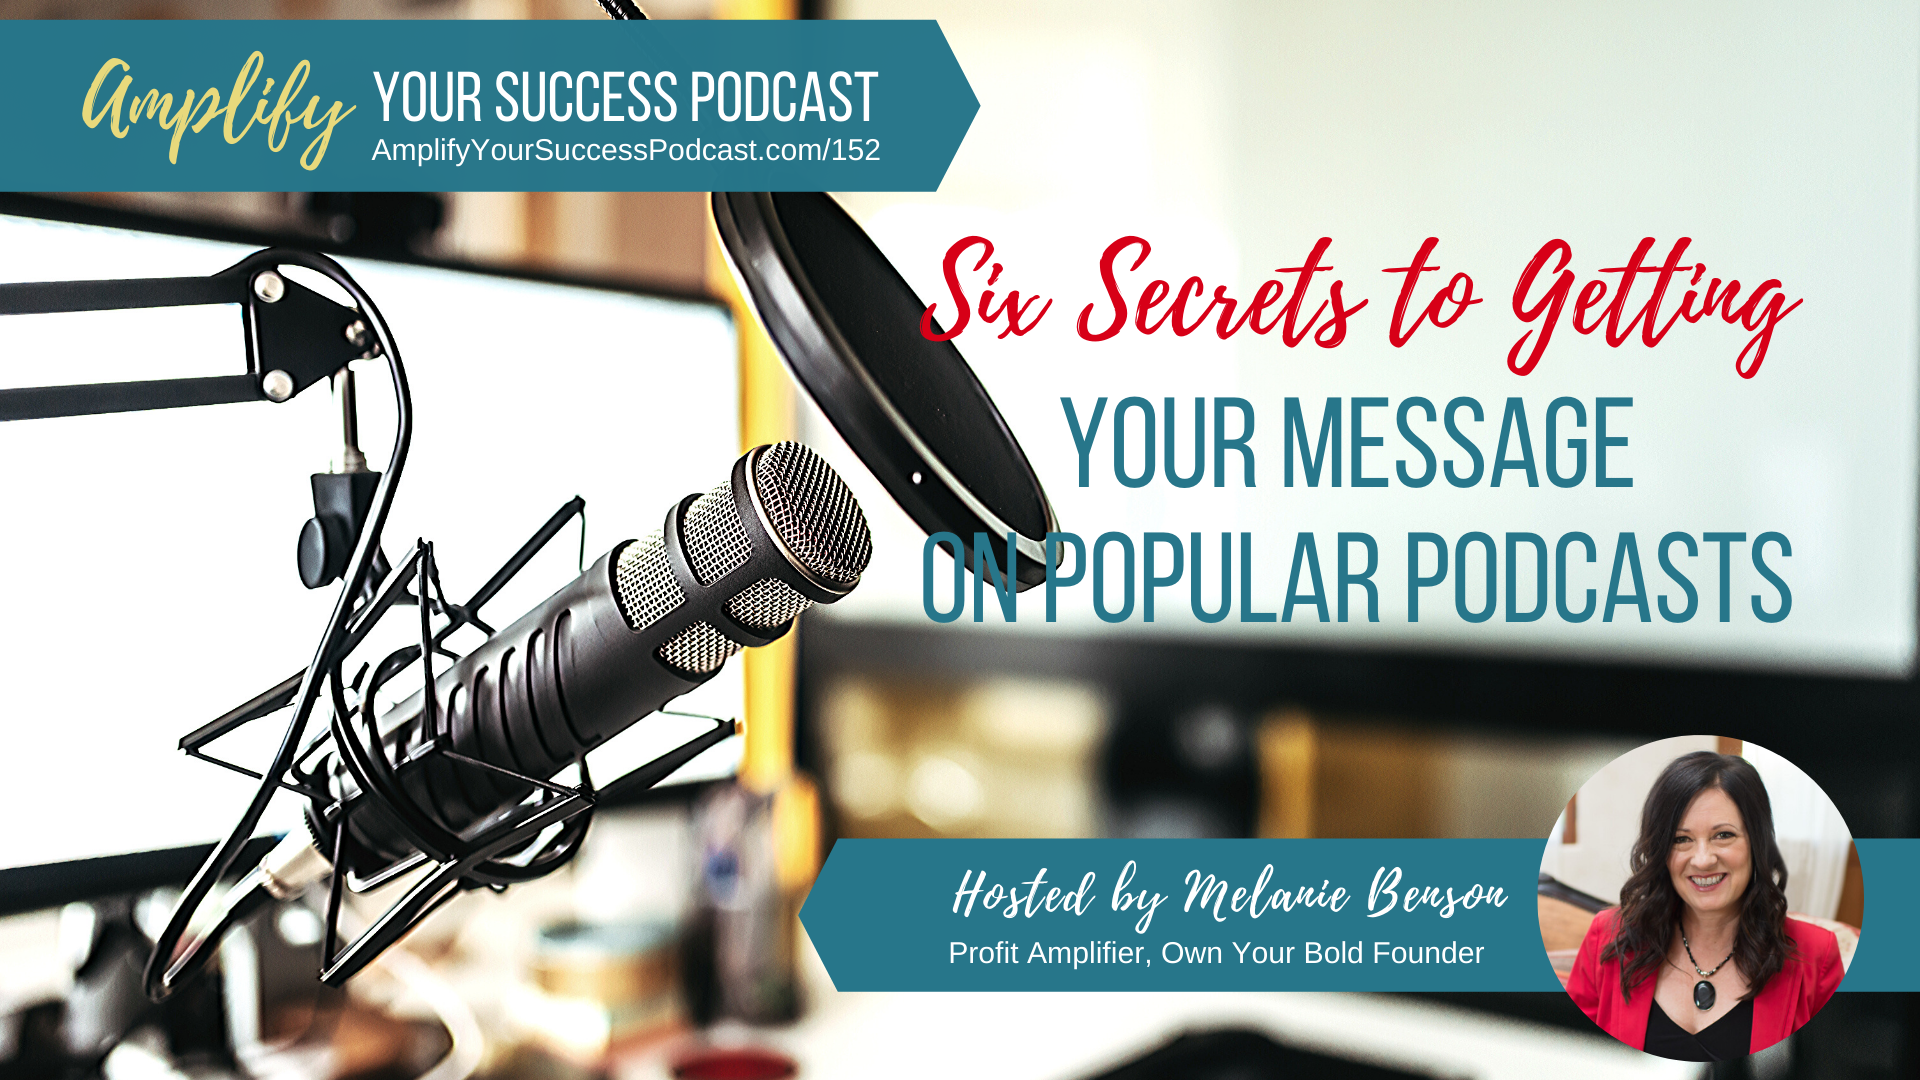 6 Secrets to Getting YOUR Message on Popular Podcasts on Amplify Your Success Podcast Episode 152